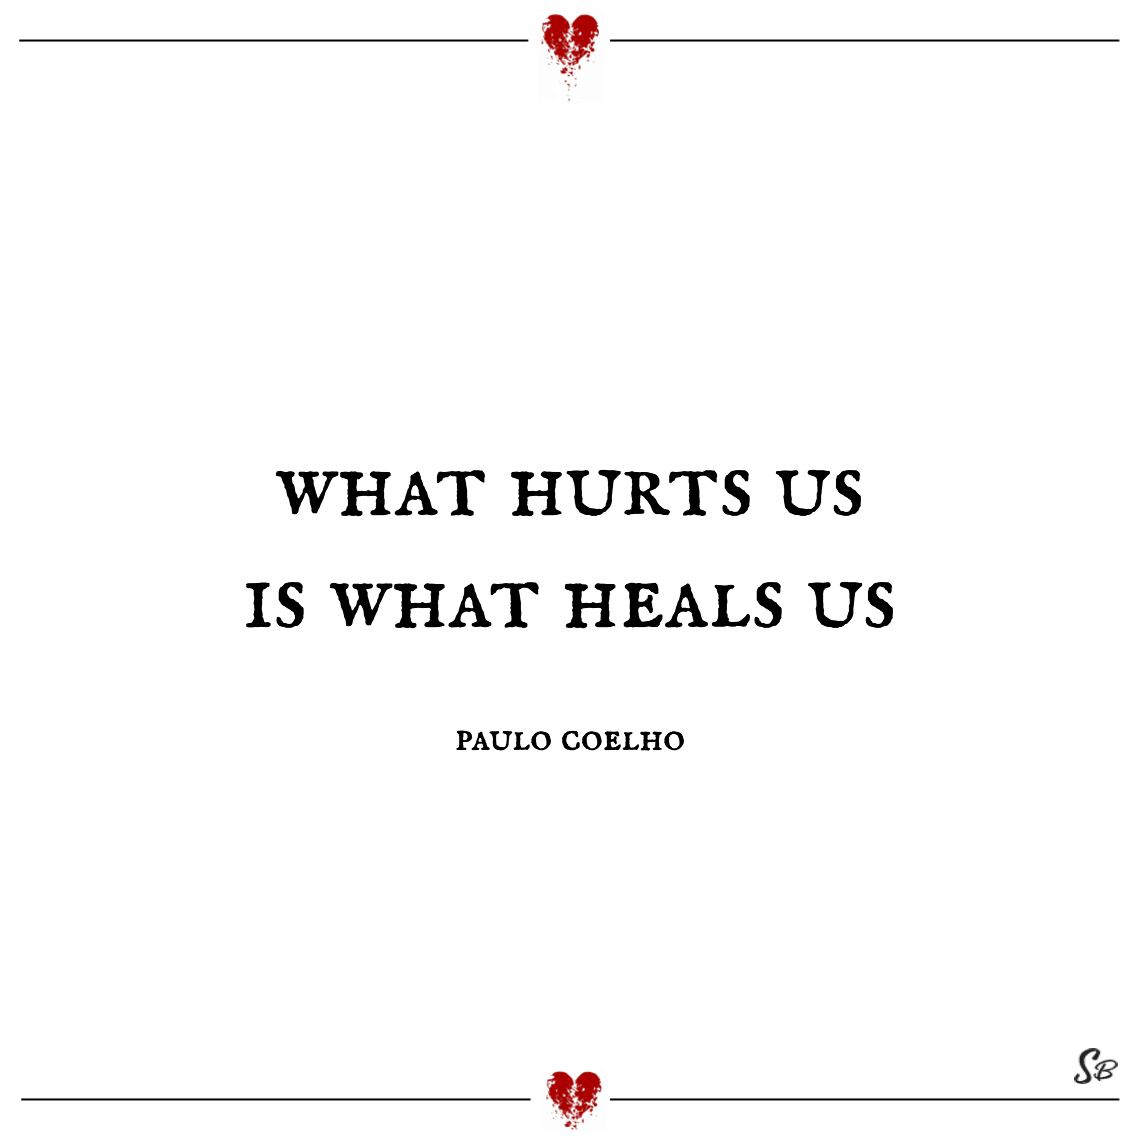 Quotes Hurt What Hurts Us Is What Heals Us Paulo Coelho Feeling Hurt Pain